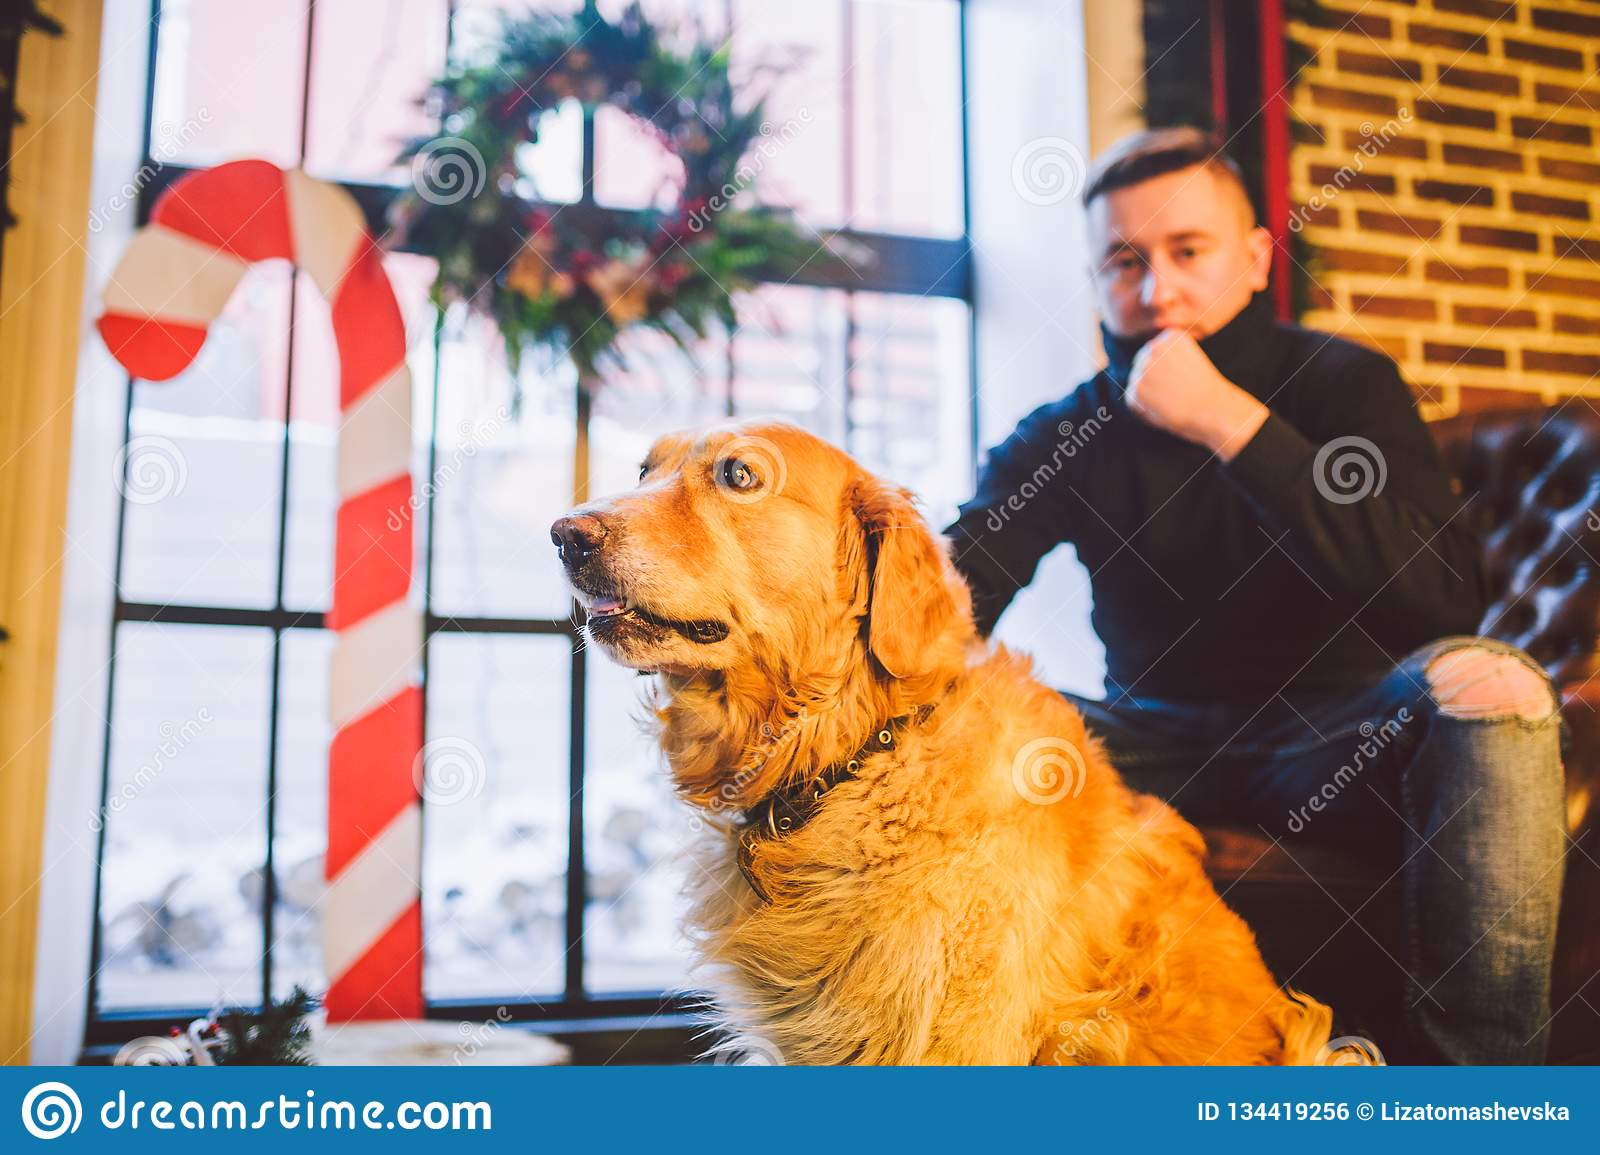 The theme is the friendship of man and animal. Caucasian young male and pet dog breed Labrador Golden Retriever at home inside in